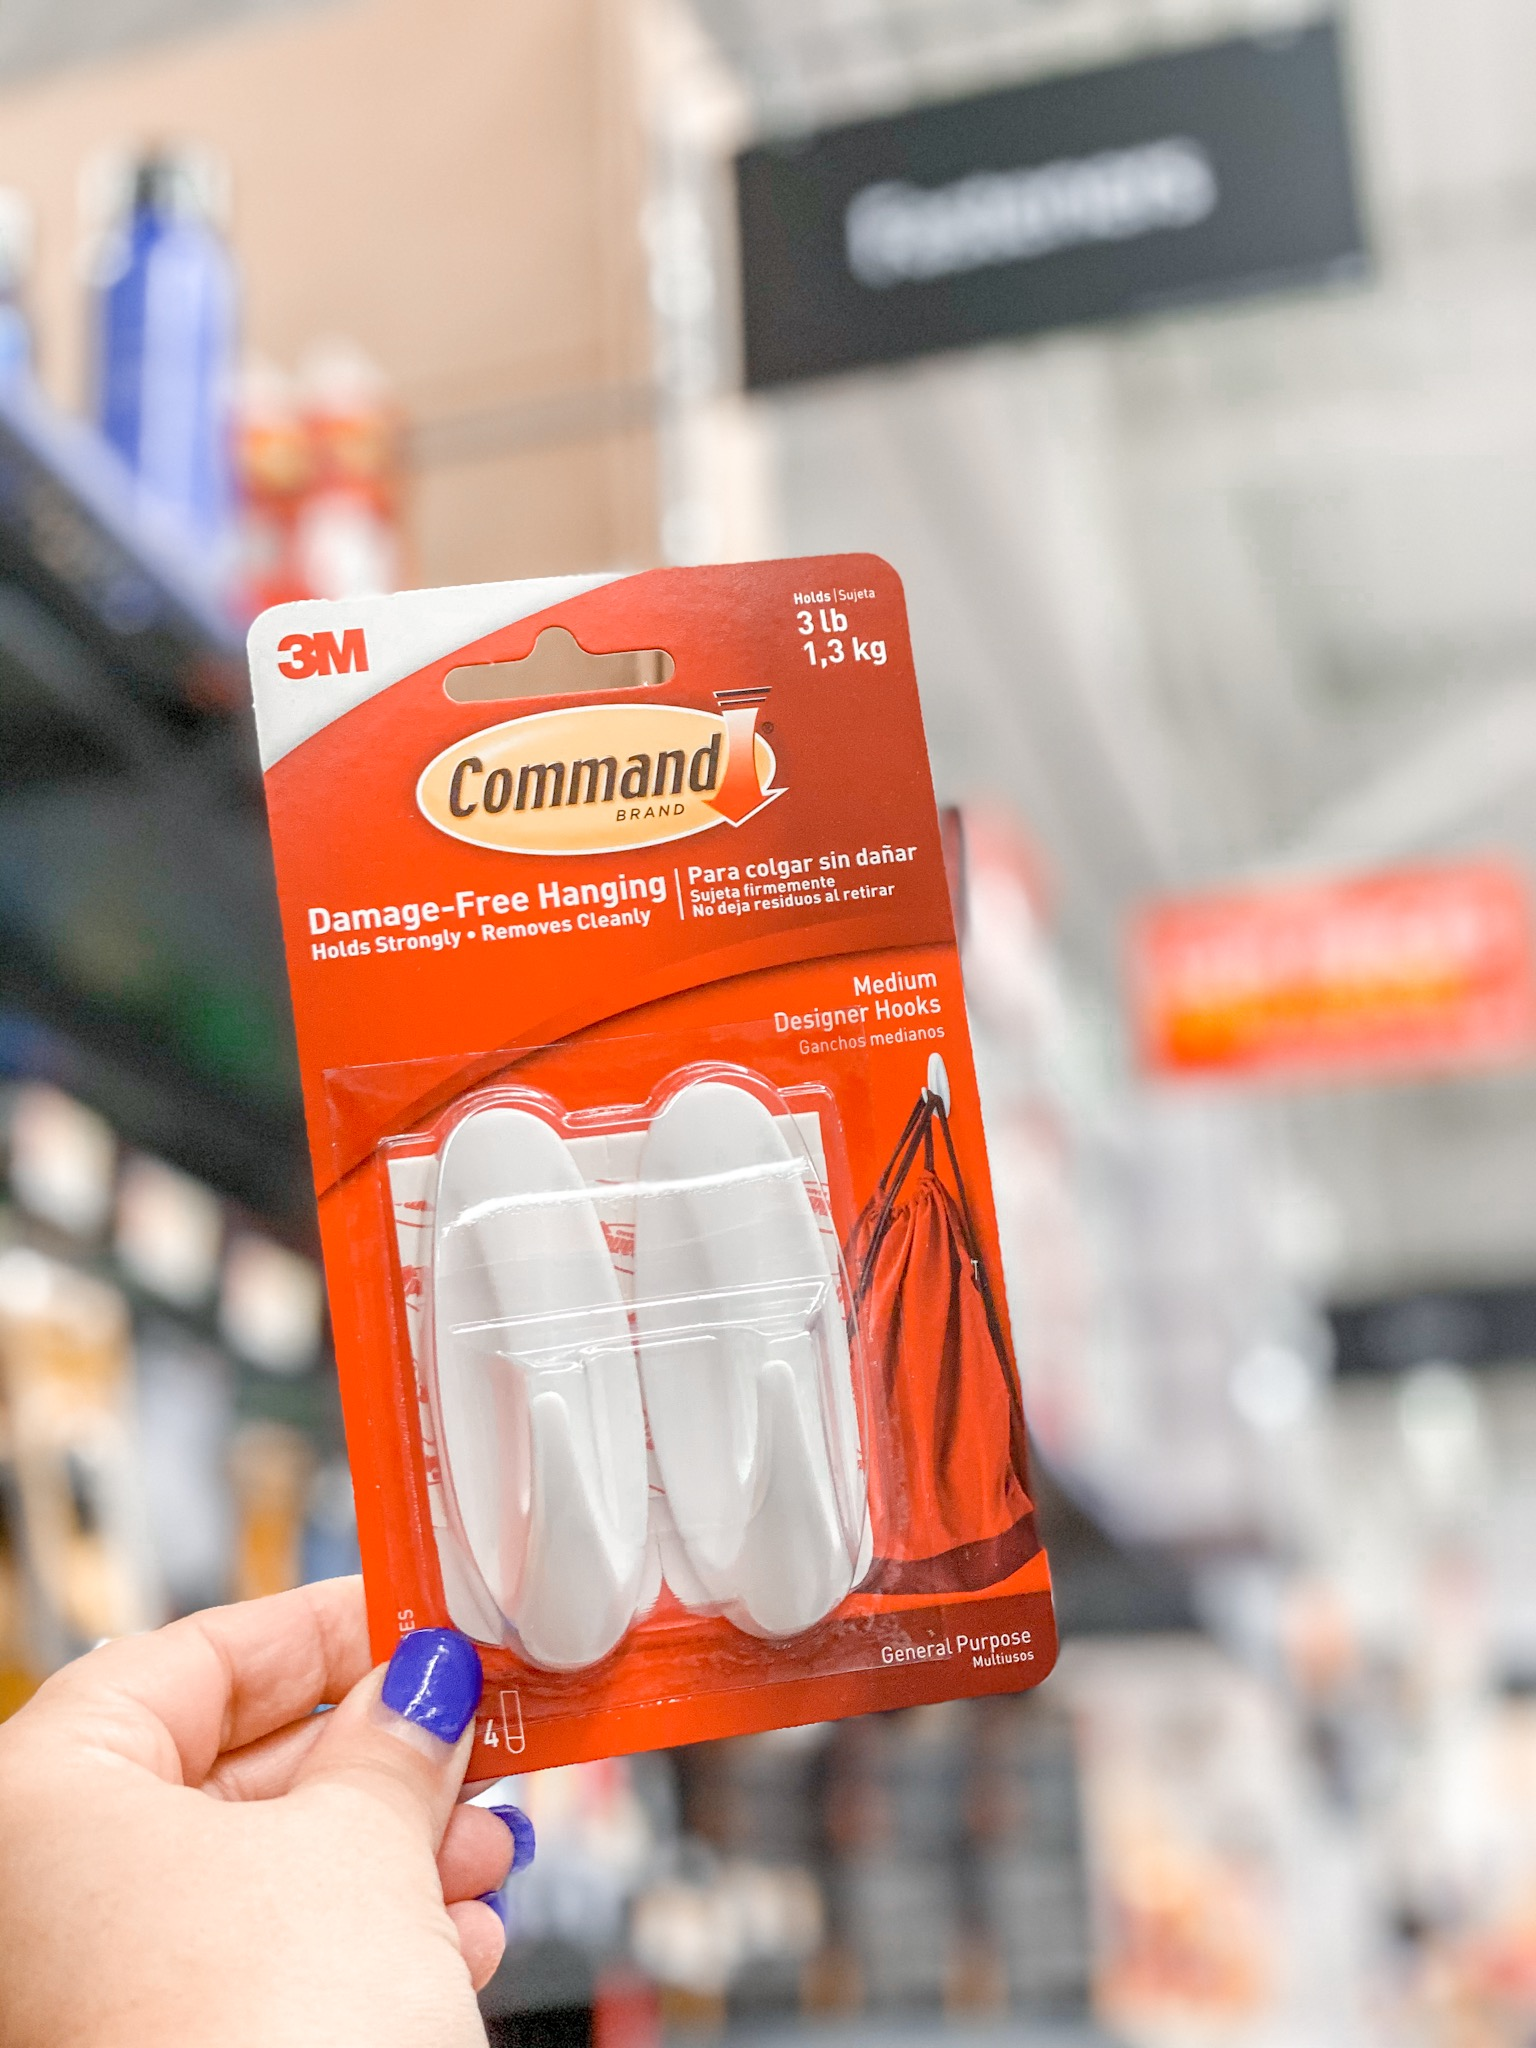 command products at walmart